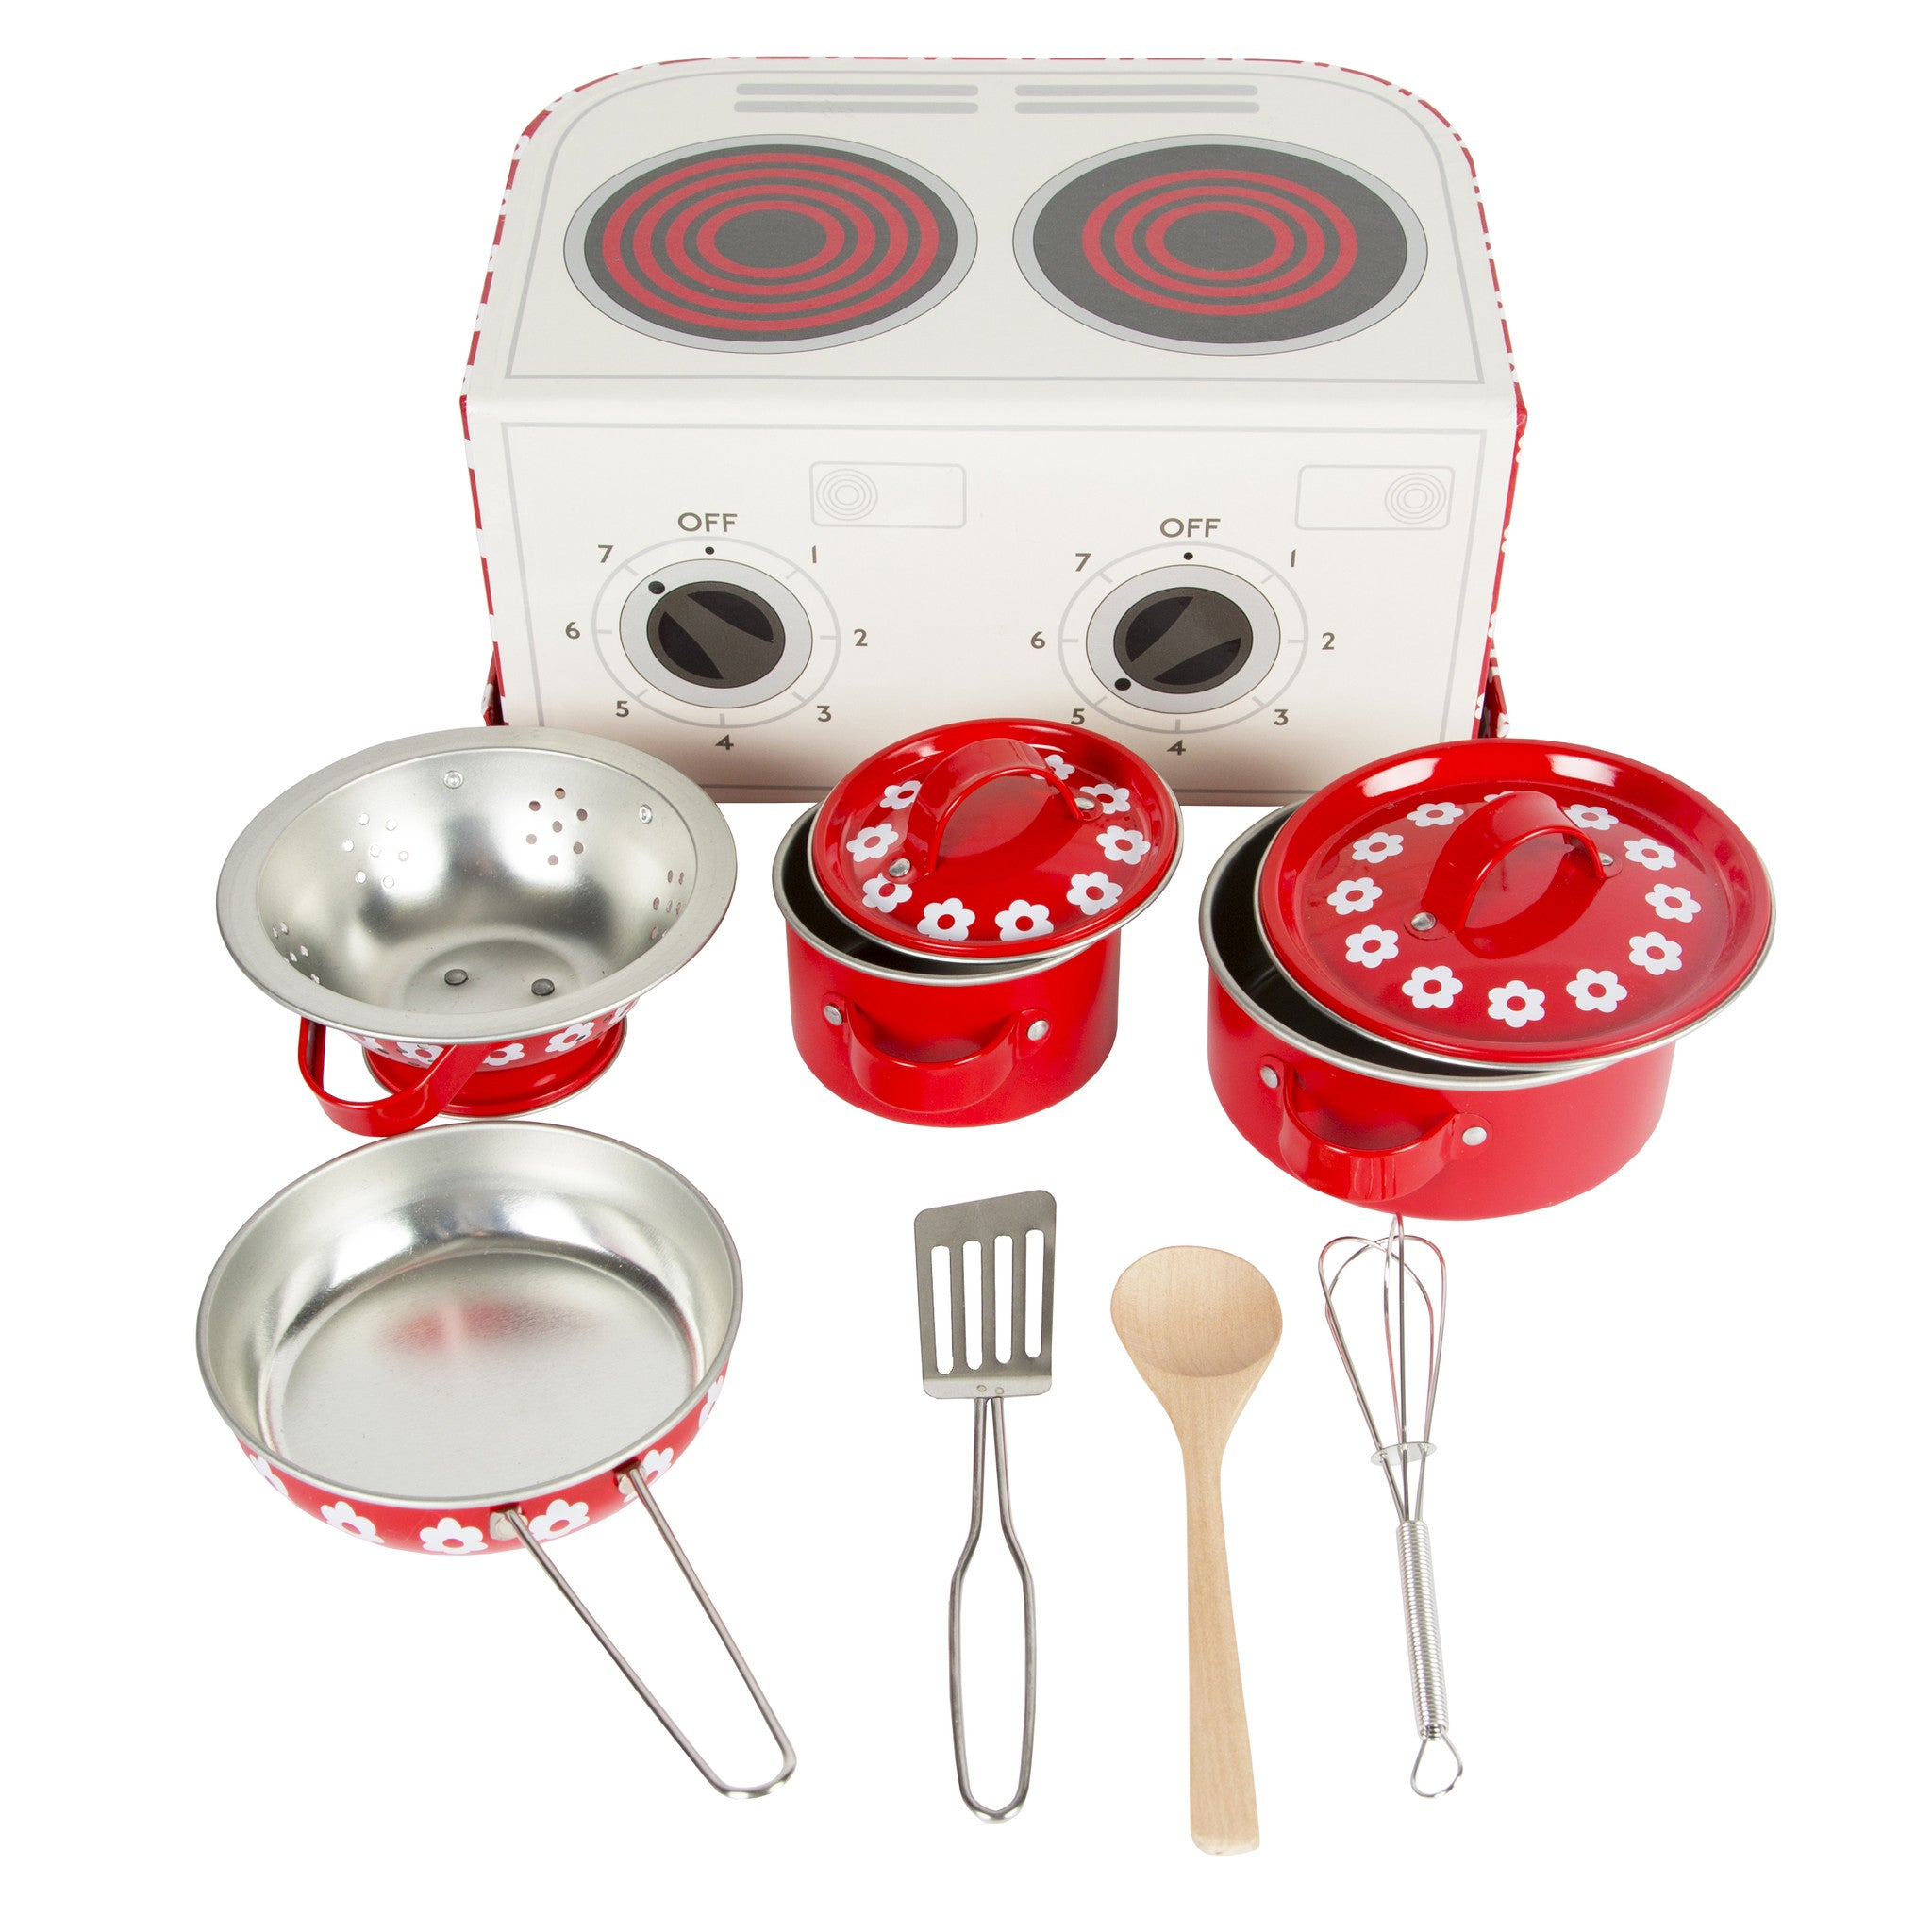 Red and white flower carry case cooking set with various red pots and utensils